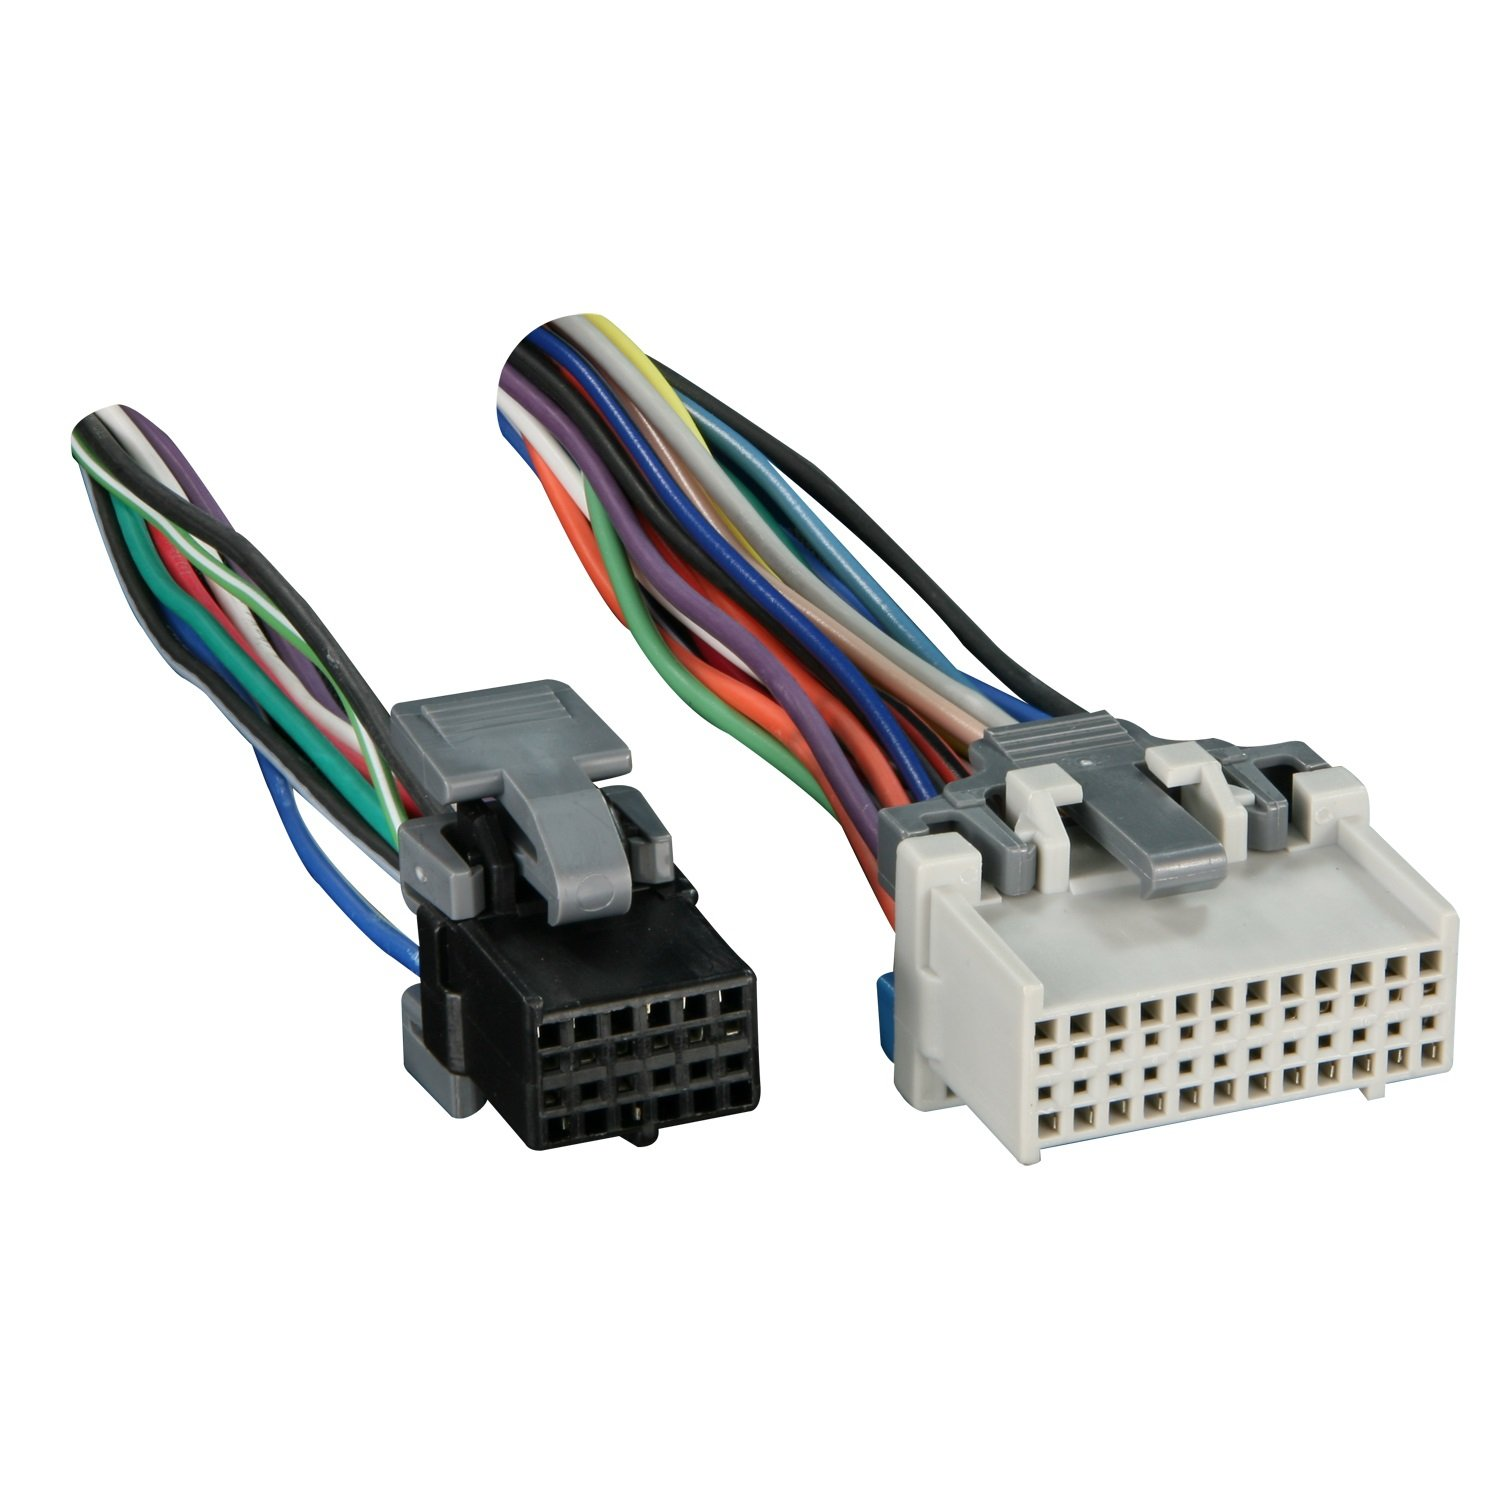 711log4bdML._SL1500_ amazon com metra turbowires 71 2003 1 wiring harness car electronics 2005 chevy colorado radio wiring harness at crackthecode.co